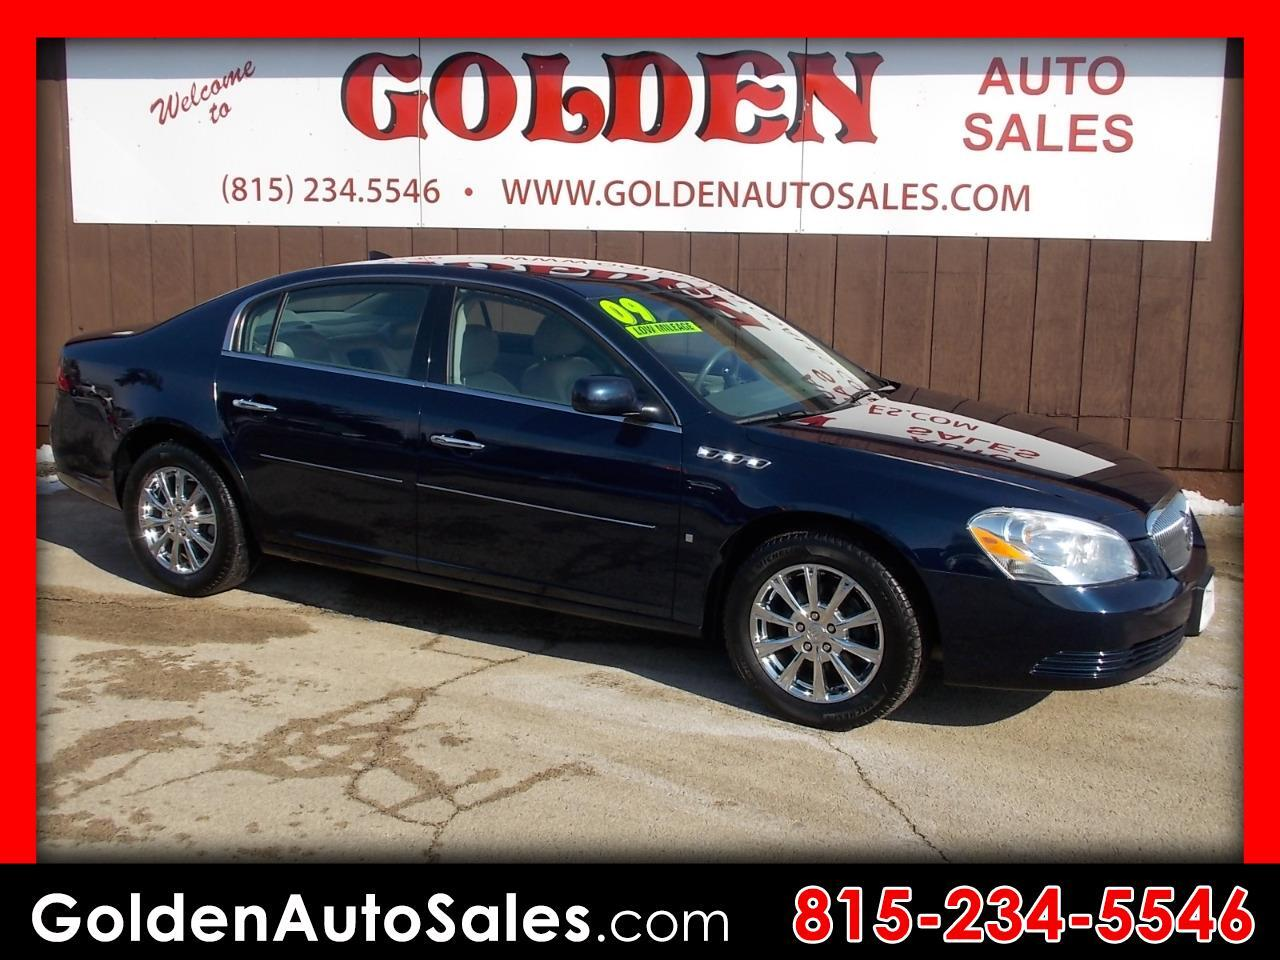 2009 Buick Lucerne 4dr Sdn CXL-3